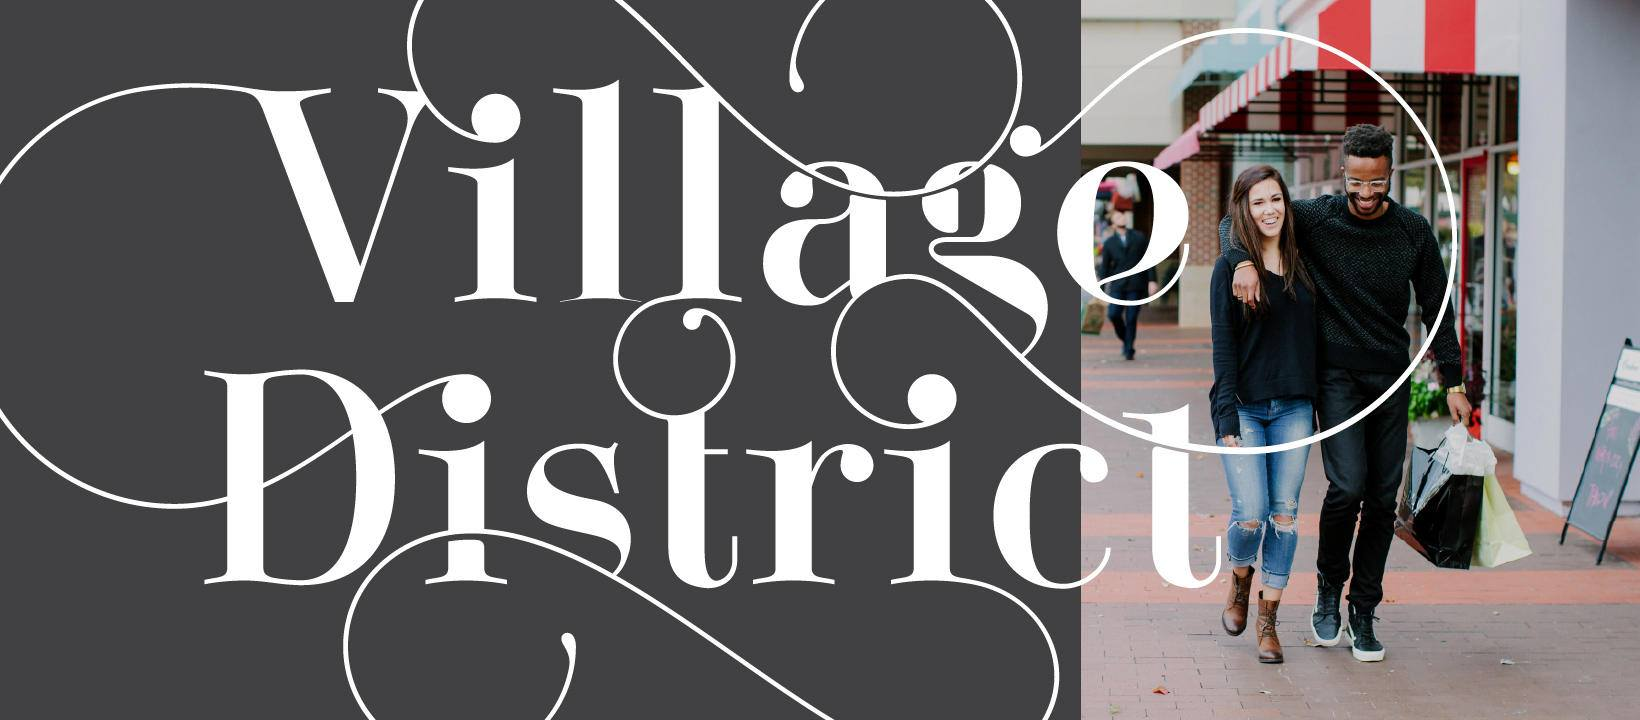 The Village District in Raleigh, NC